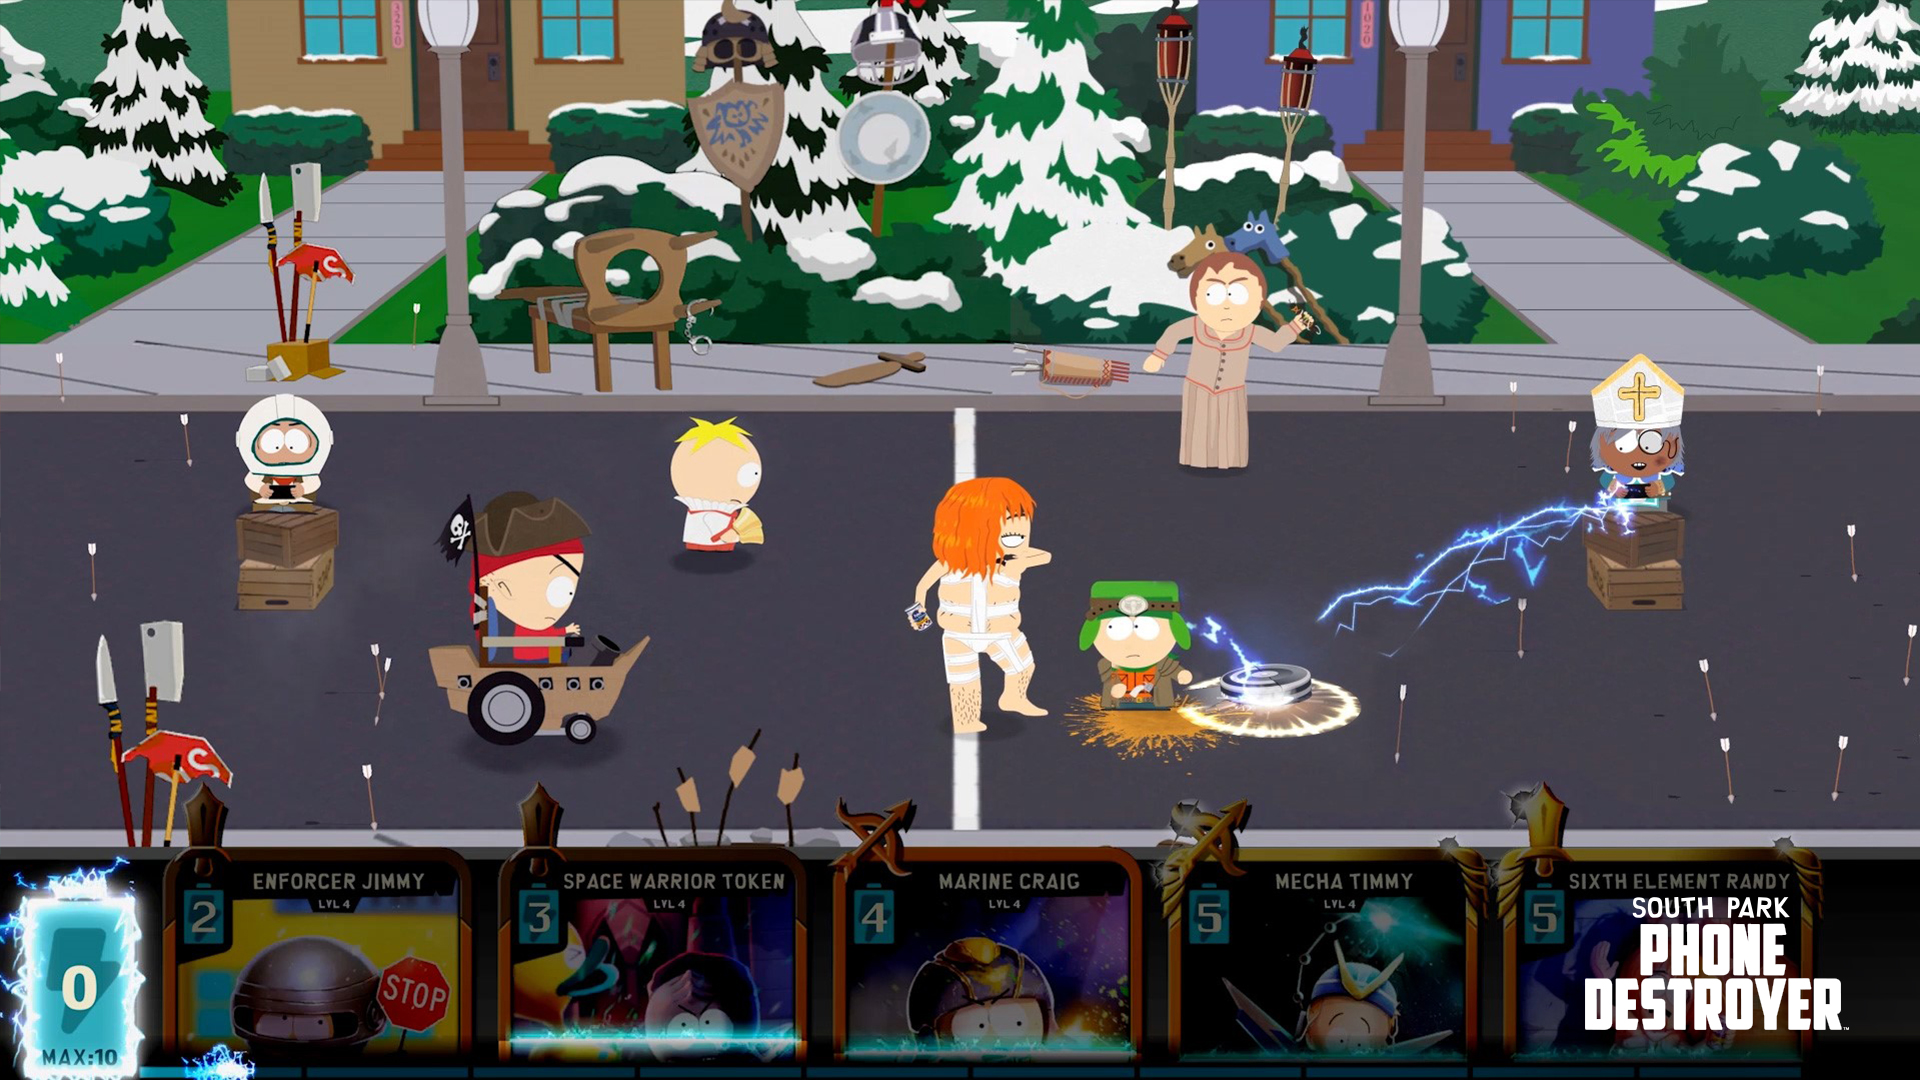 9 New Android Games You Have To Play This Week South Park Phone Destroyer 1969213 Hd Wallpaper Backgrounds Download